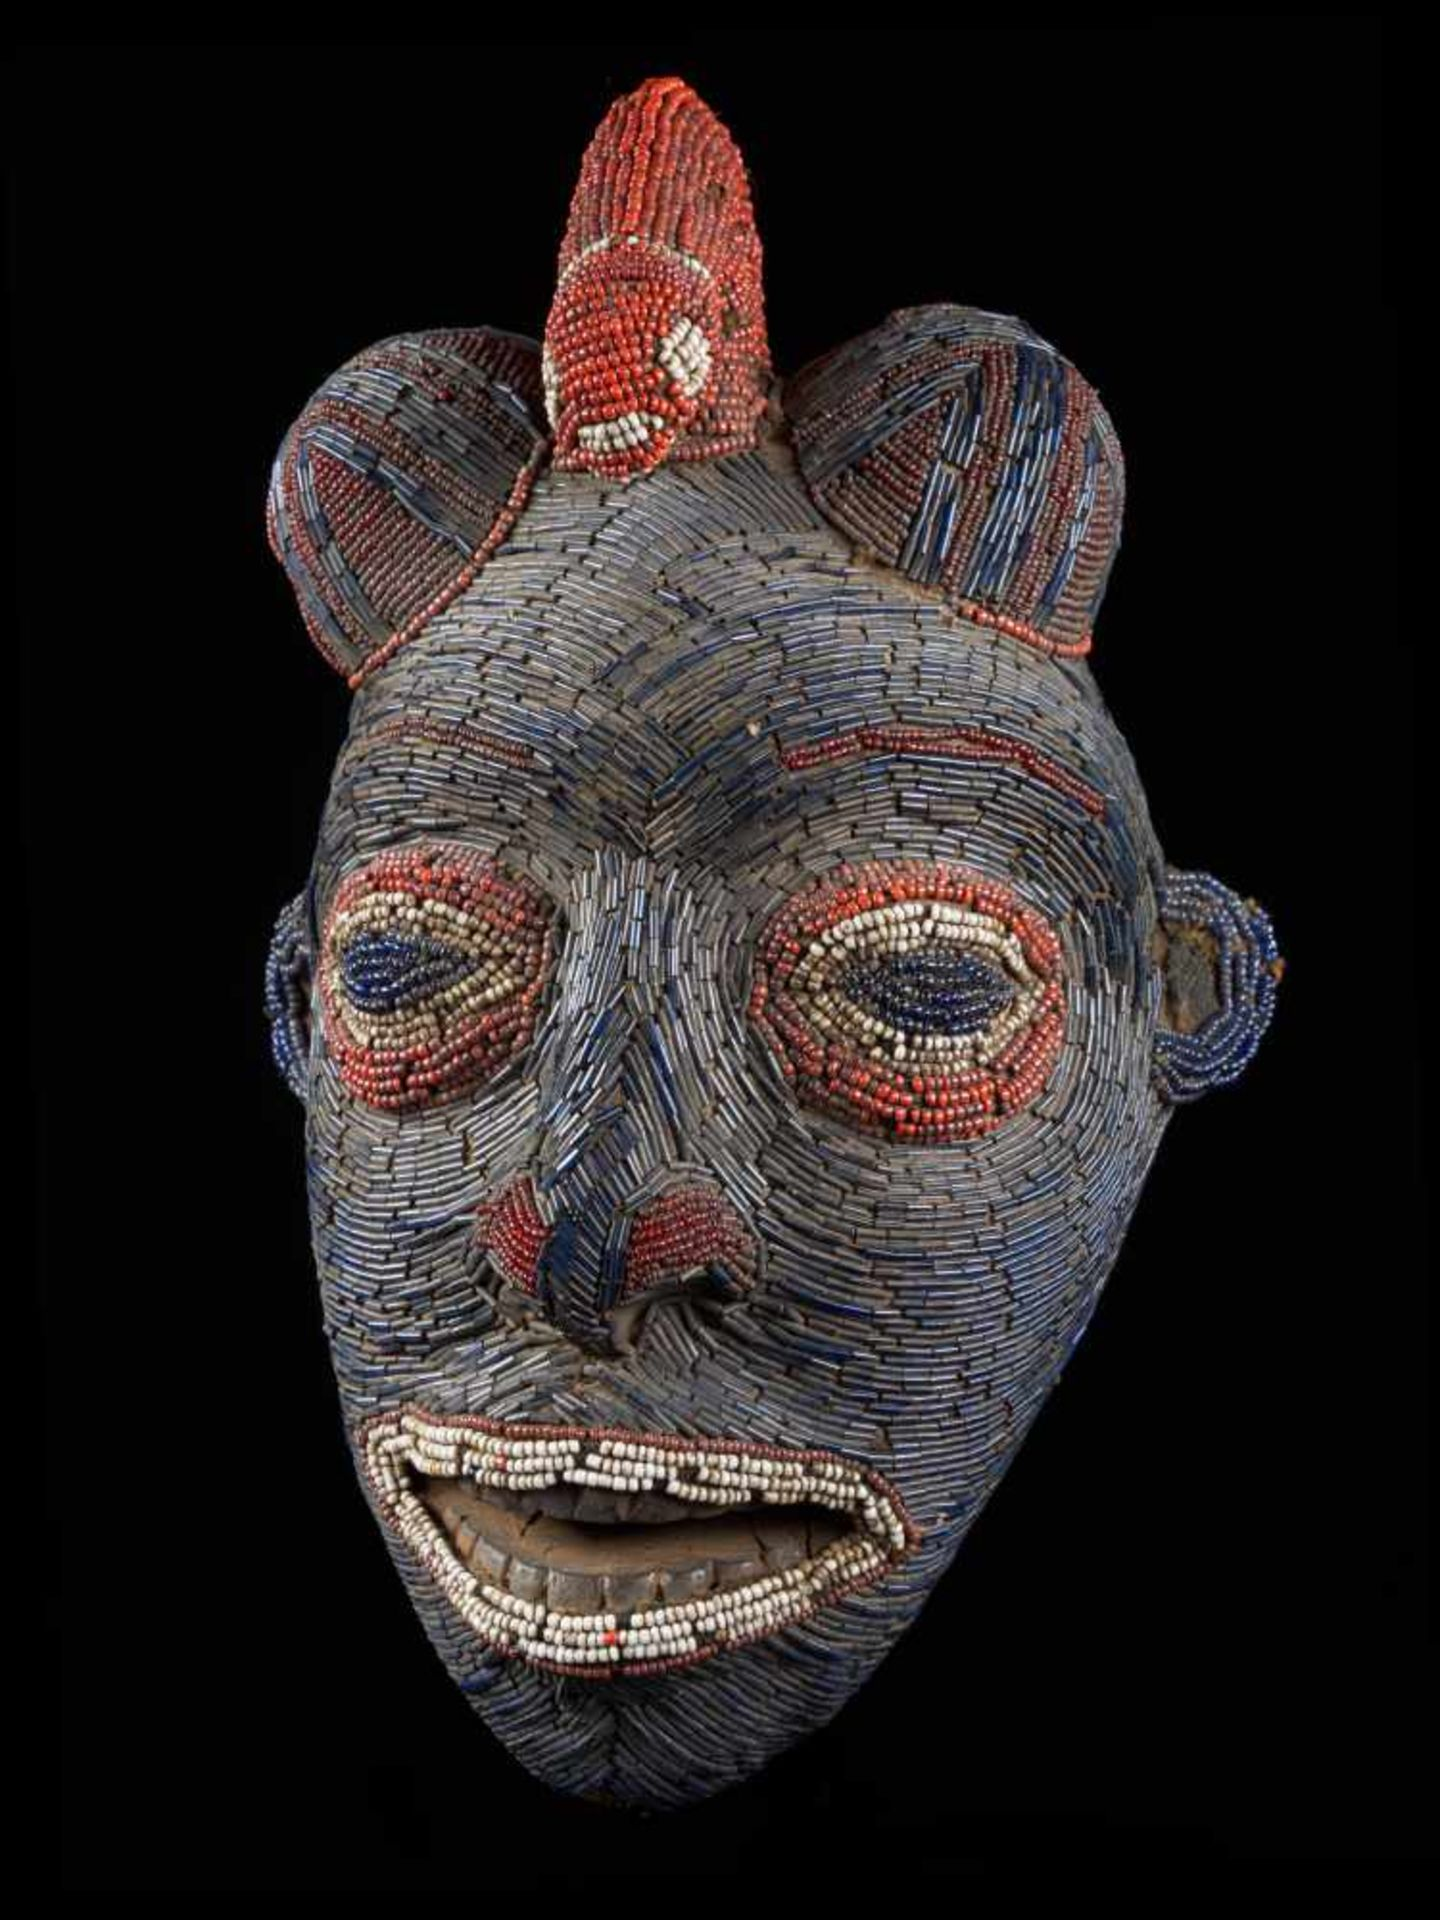 Facemask Topped With Leopard Figure - Tribal ArtAn exquisite blue face mask. This wooden mask is